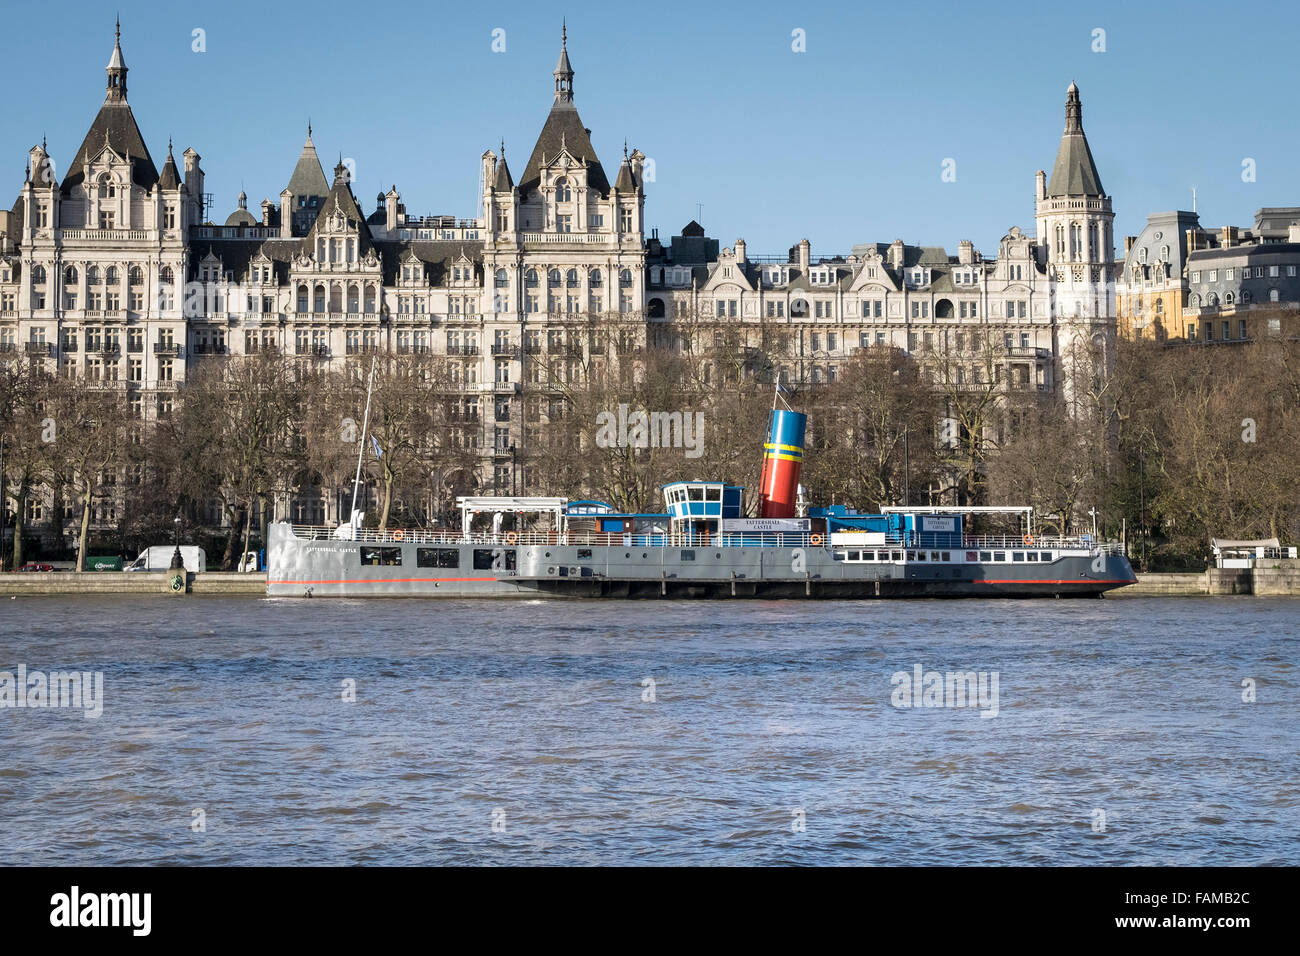 The Tattershall Castle moored in front of Whitehall Court on the Embankment in London. - Stock Image